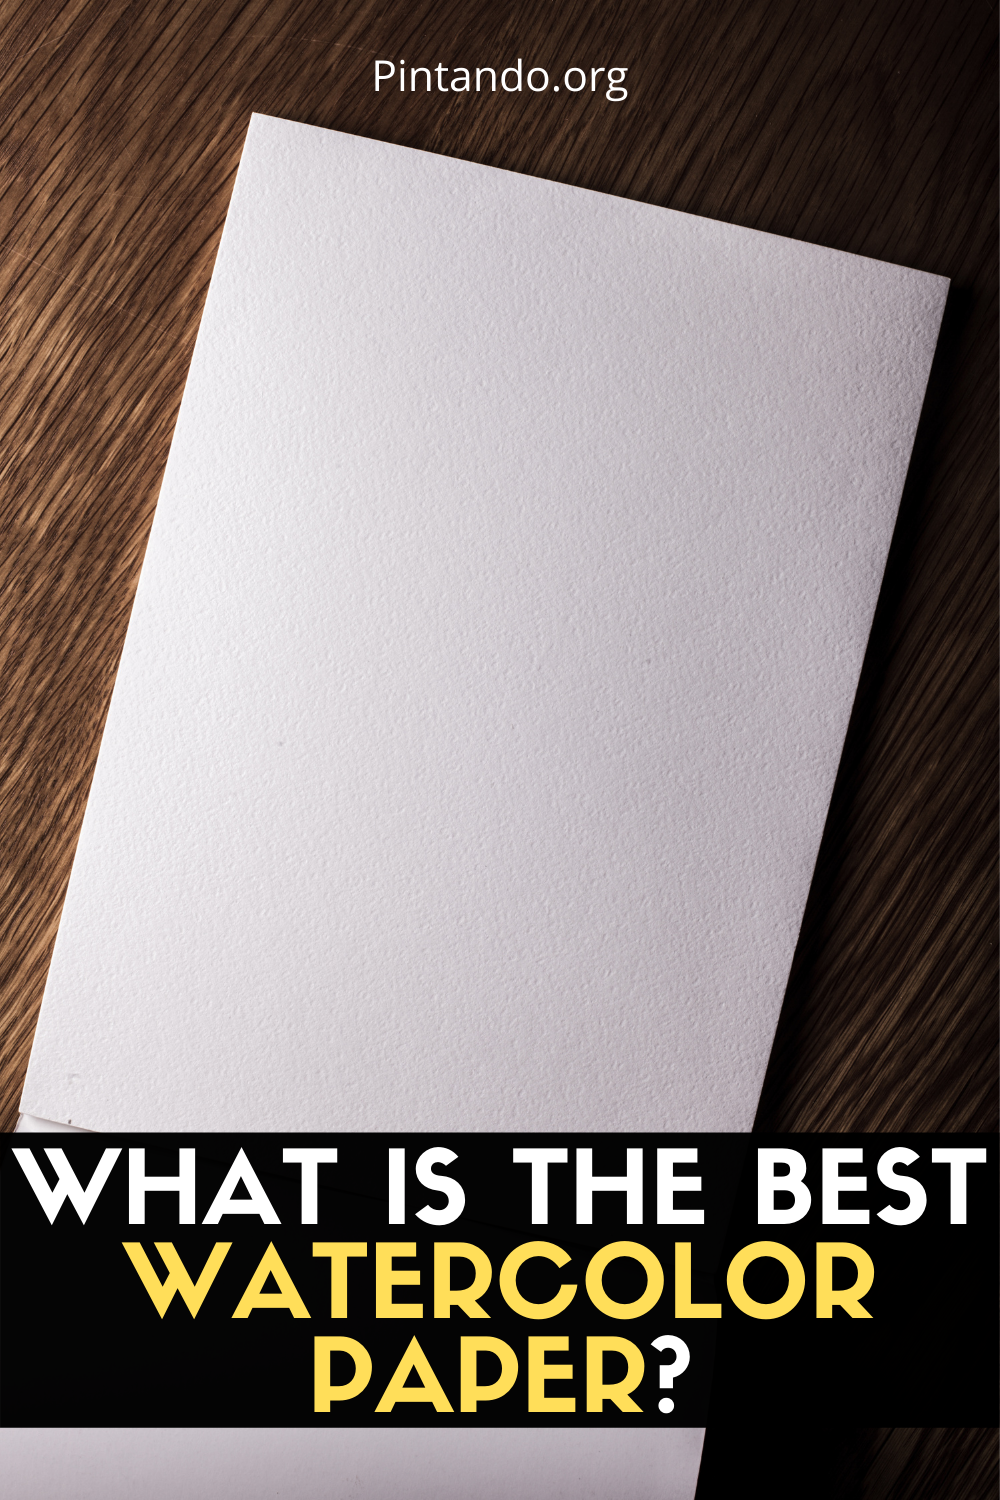 WHAT IS THE BEST WATERCOLOR PAPER